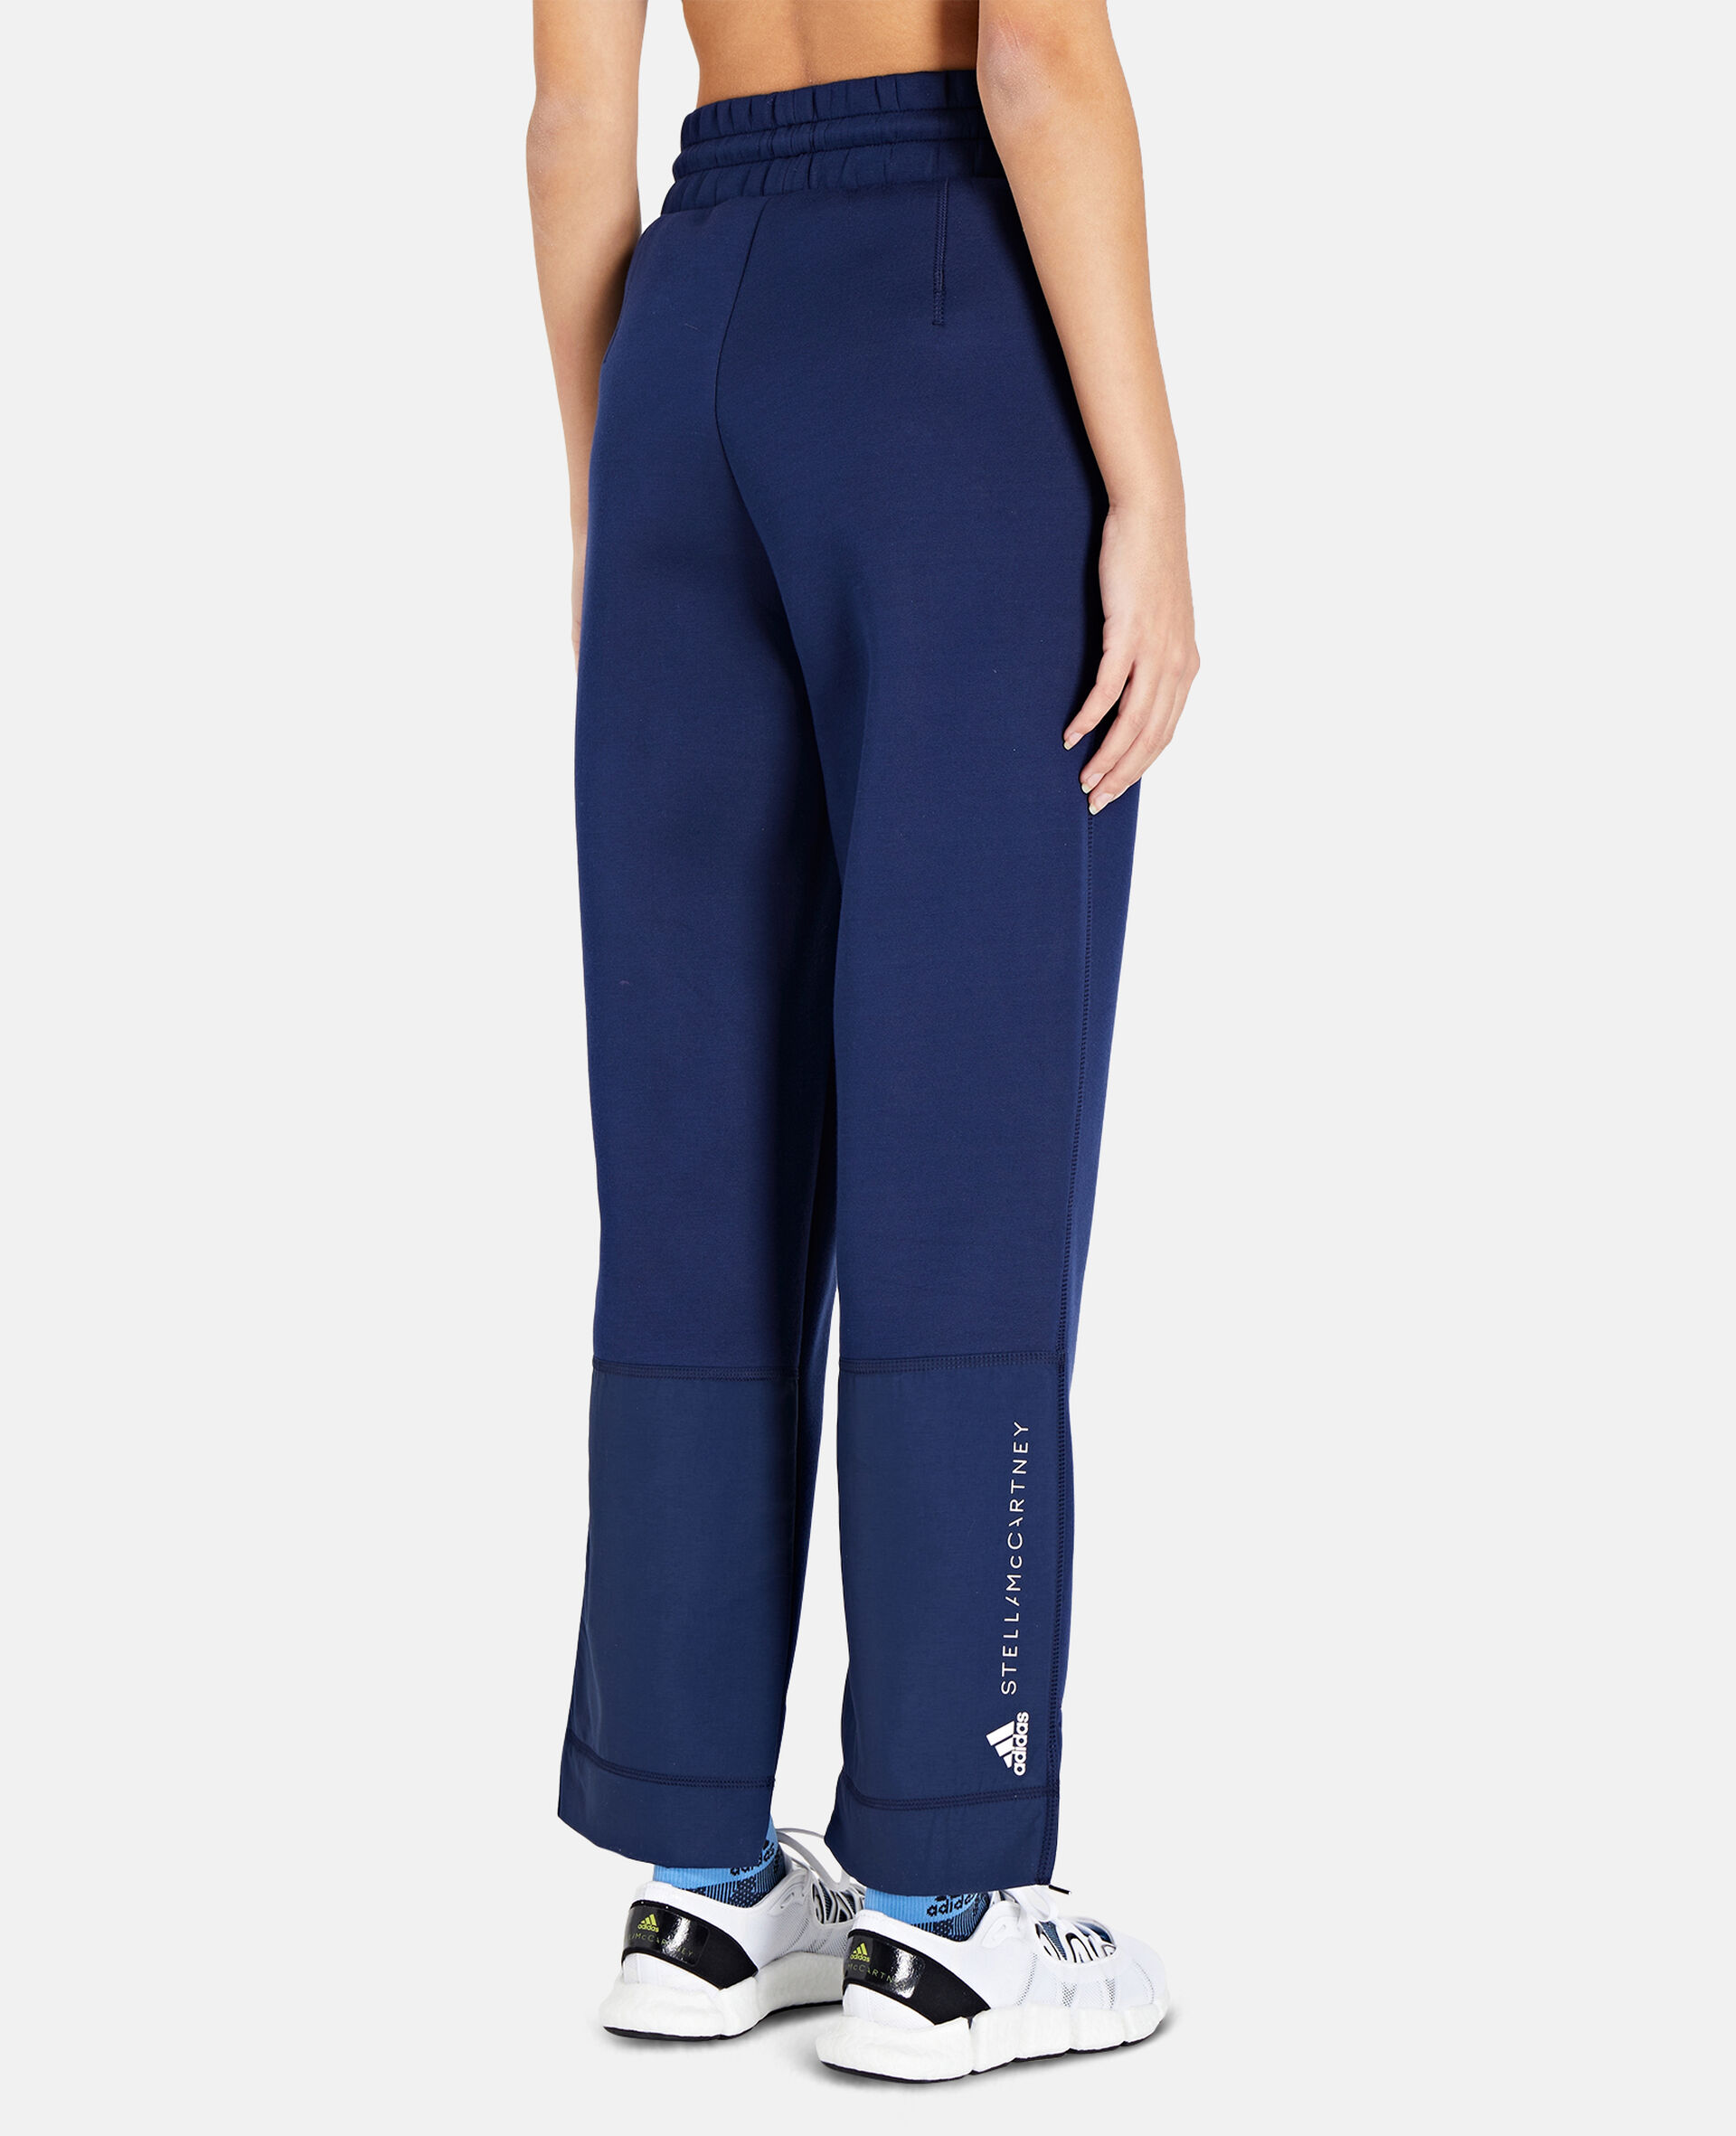 Blue Tapered Sweatpants-Blue-large image number 2